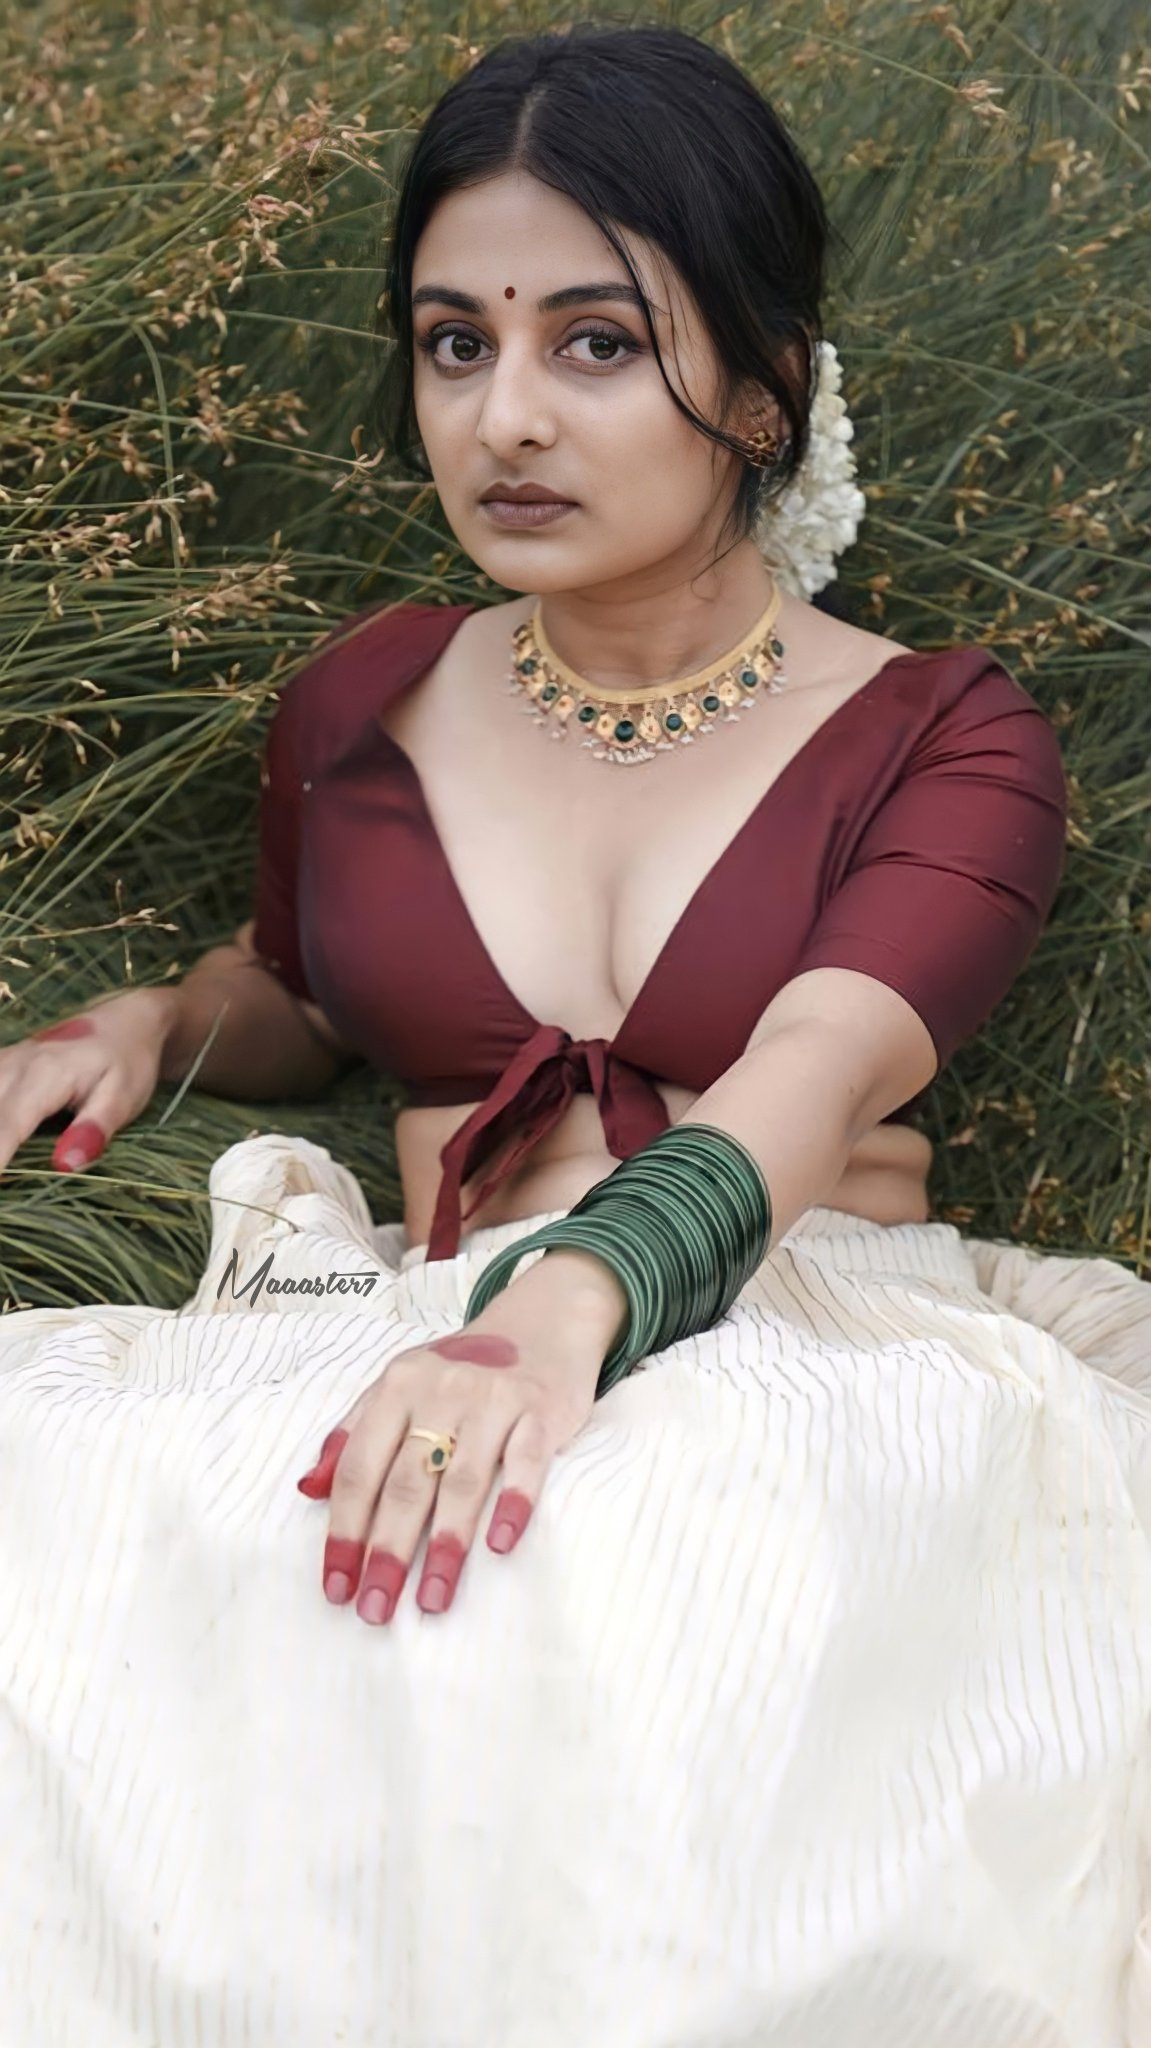 Esther Anil, Esther Anil Latest hot photoshoot, Esther Anil hot photoshoot, Esther Anil Sexy Photoshoot